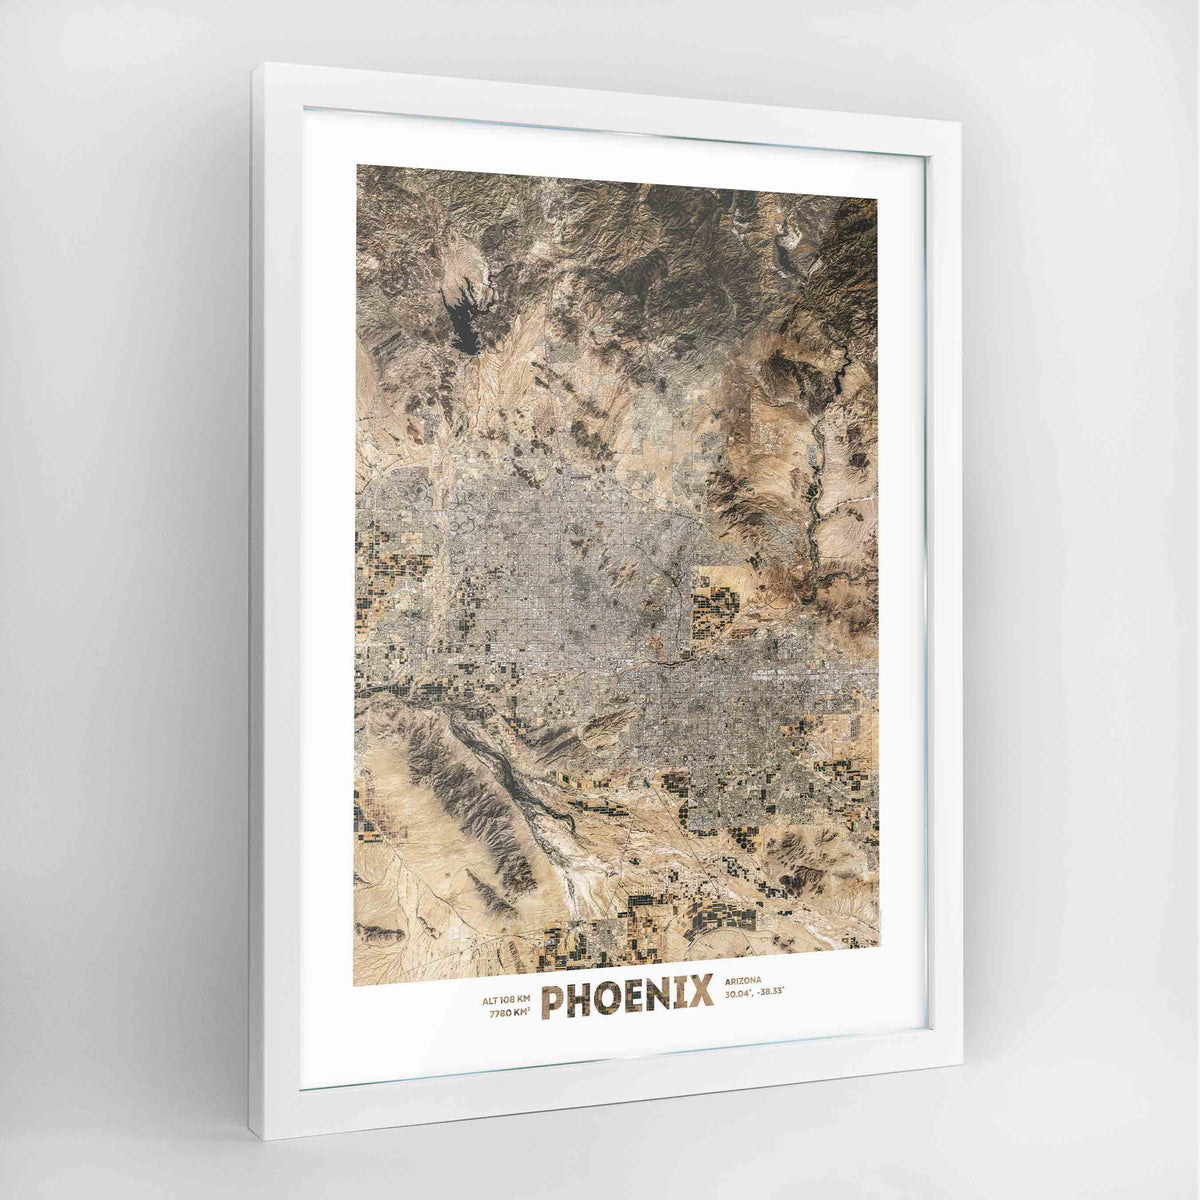 Phoenix Earth Photography Art Print - Framed